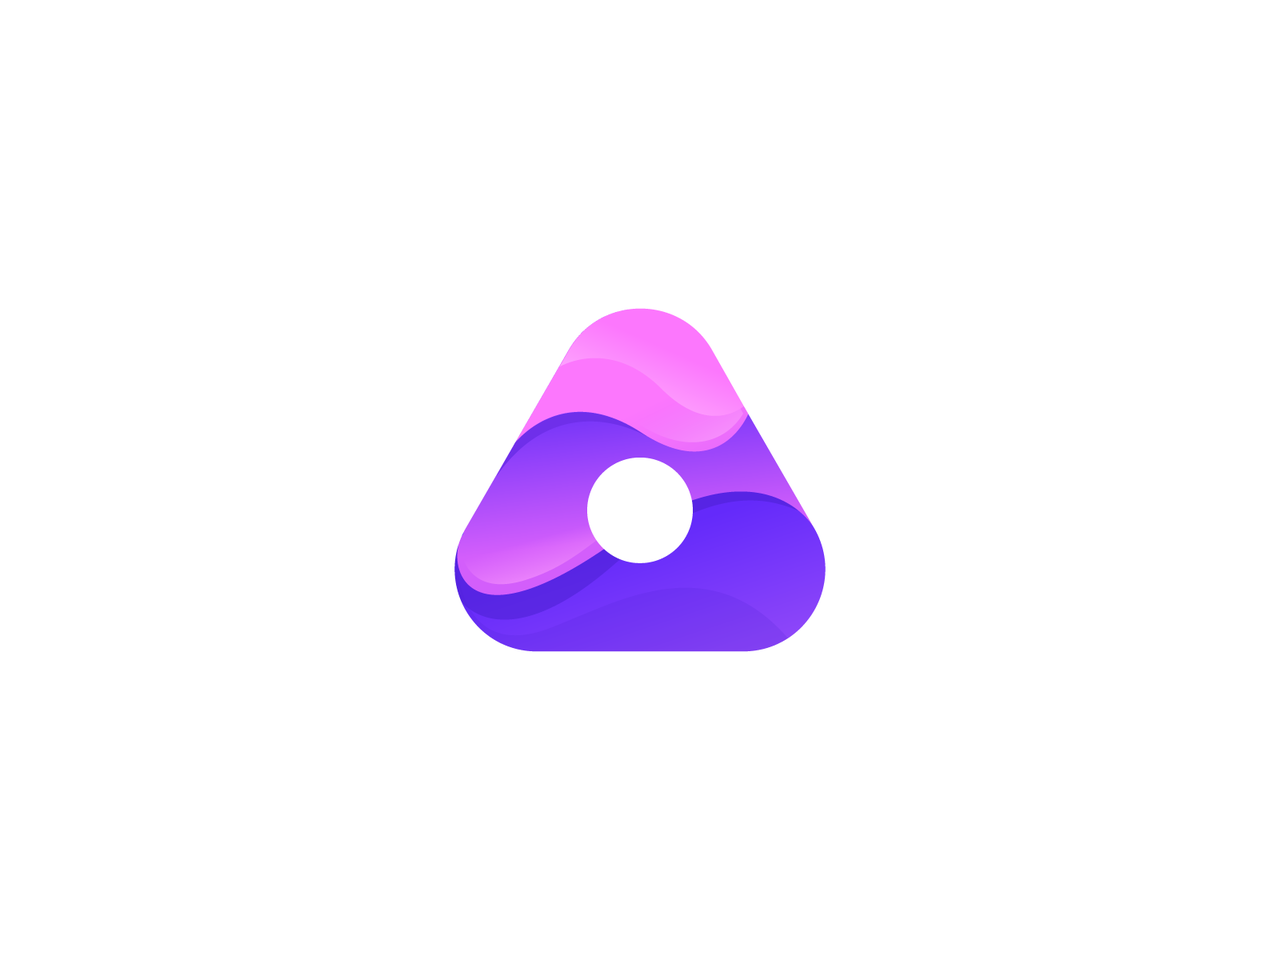 Abstract purple logo